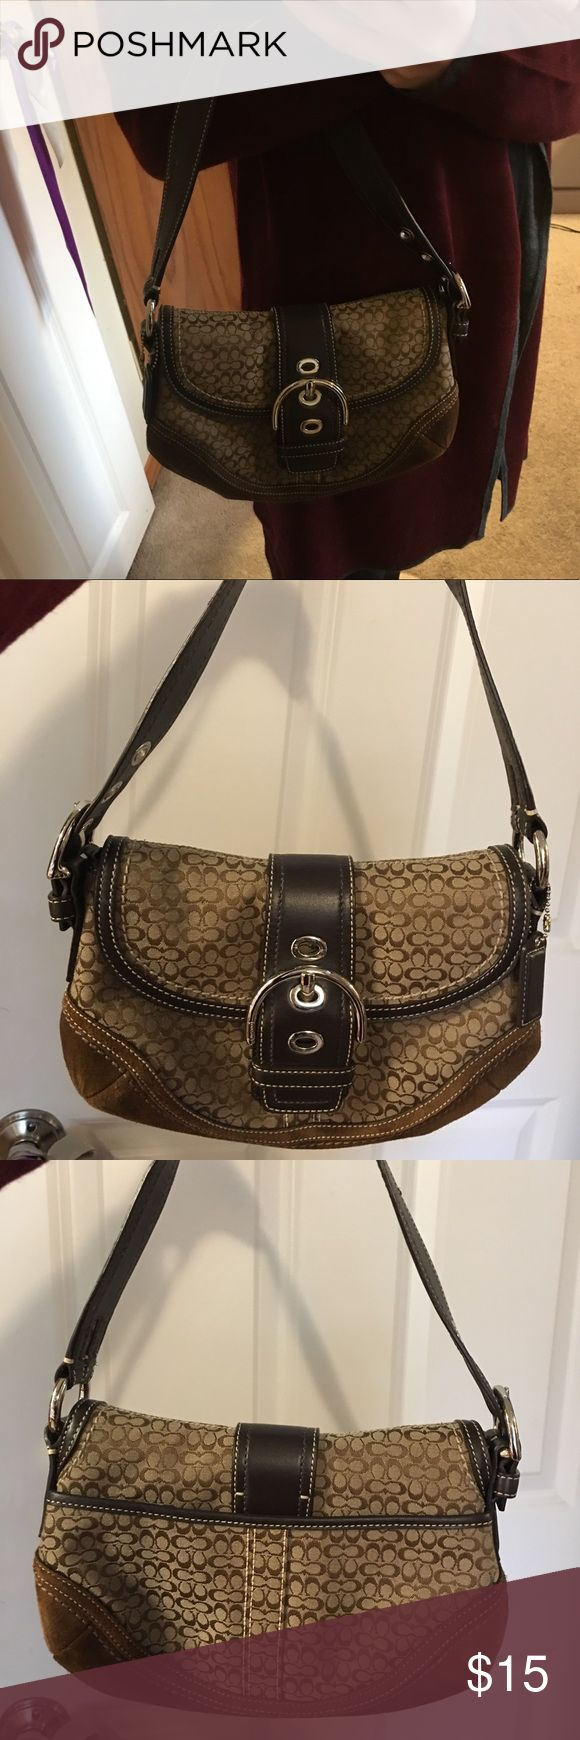 Small brown Coach purse This is a small Coach purse. It has a small stain on the corner as seen in the picture but is otherwise clean. Coach Bags